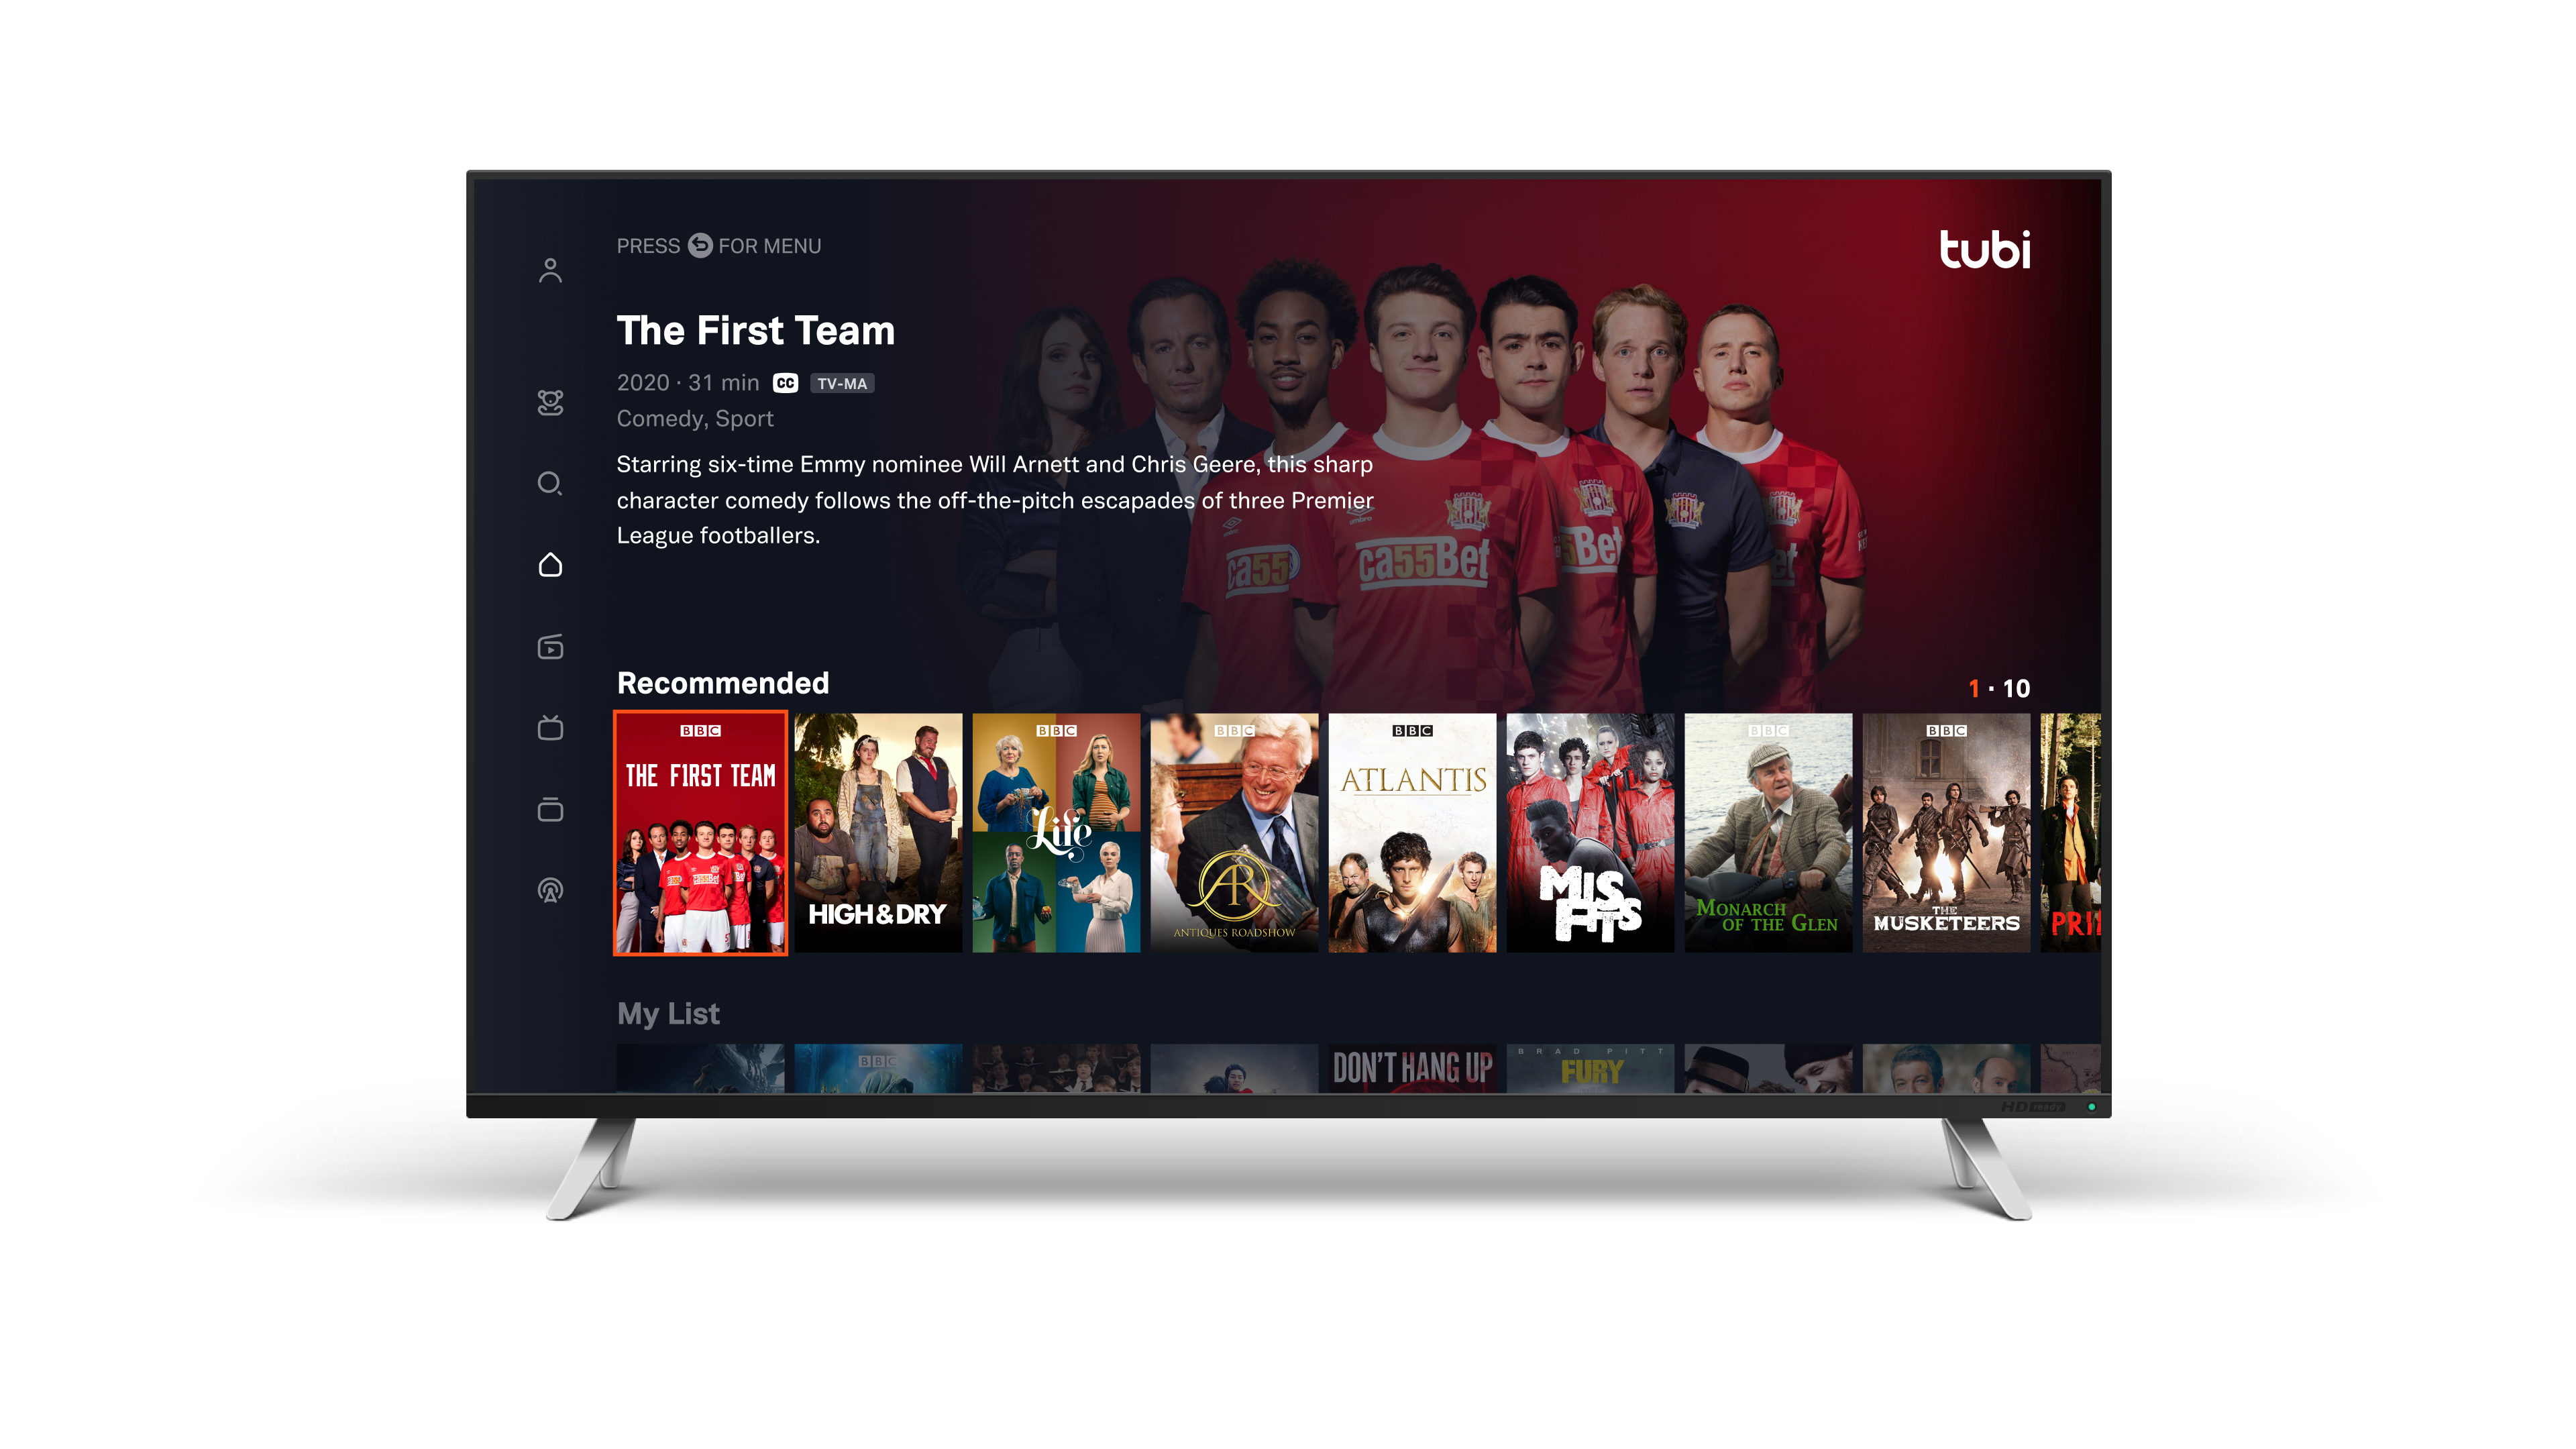 TUBI AND BBC STUDIOS ENTER SIGNIFICANT CONTENT DEAL TO BRING OVER 400 HOURS OF PREMIUM PROGRAMMING TO FOX ENTERTAINMENT'S FREE STREAMING SERVICE